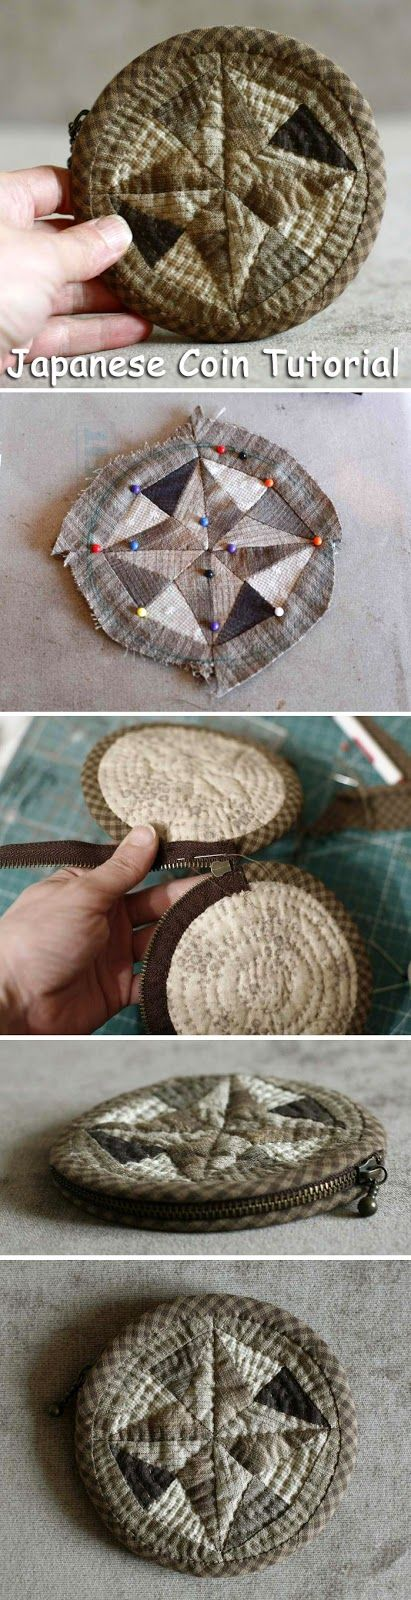 Sew Japanese Coin holders. Quilting and patchwork. DIY step-by-step tutorial. Шьём японскую монетницу. Мастер-класс. http://www.handmadiya.com/2015/09/sew-japanese-coin-holders.html